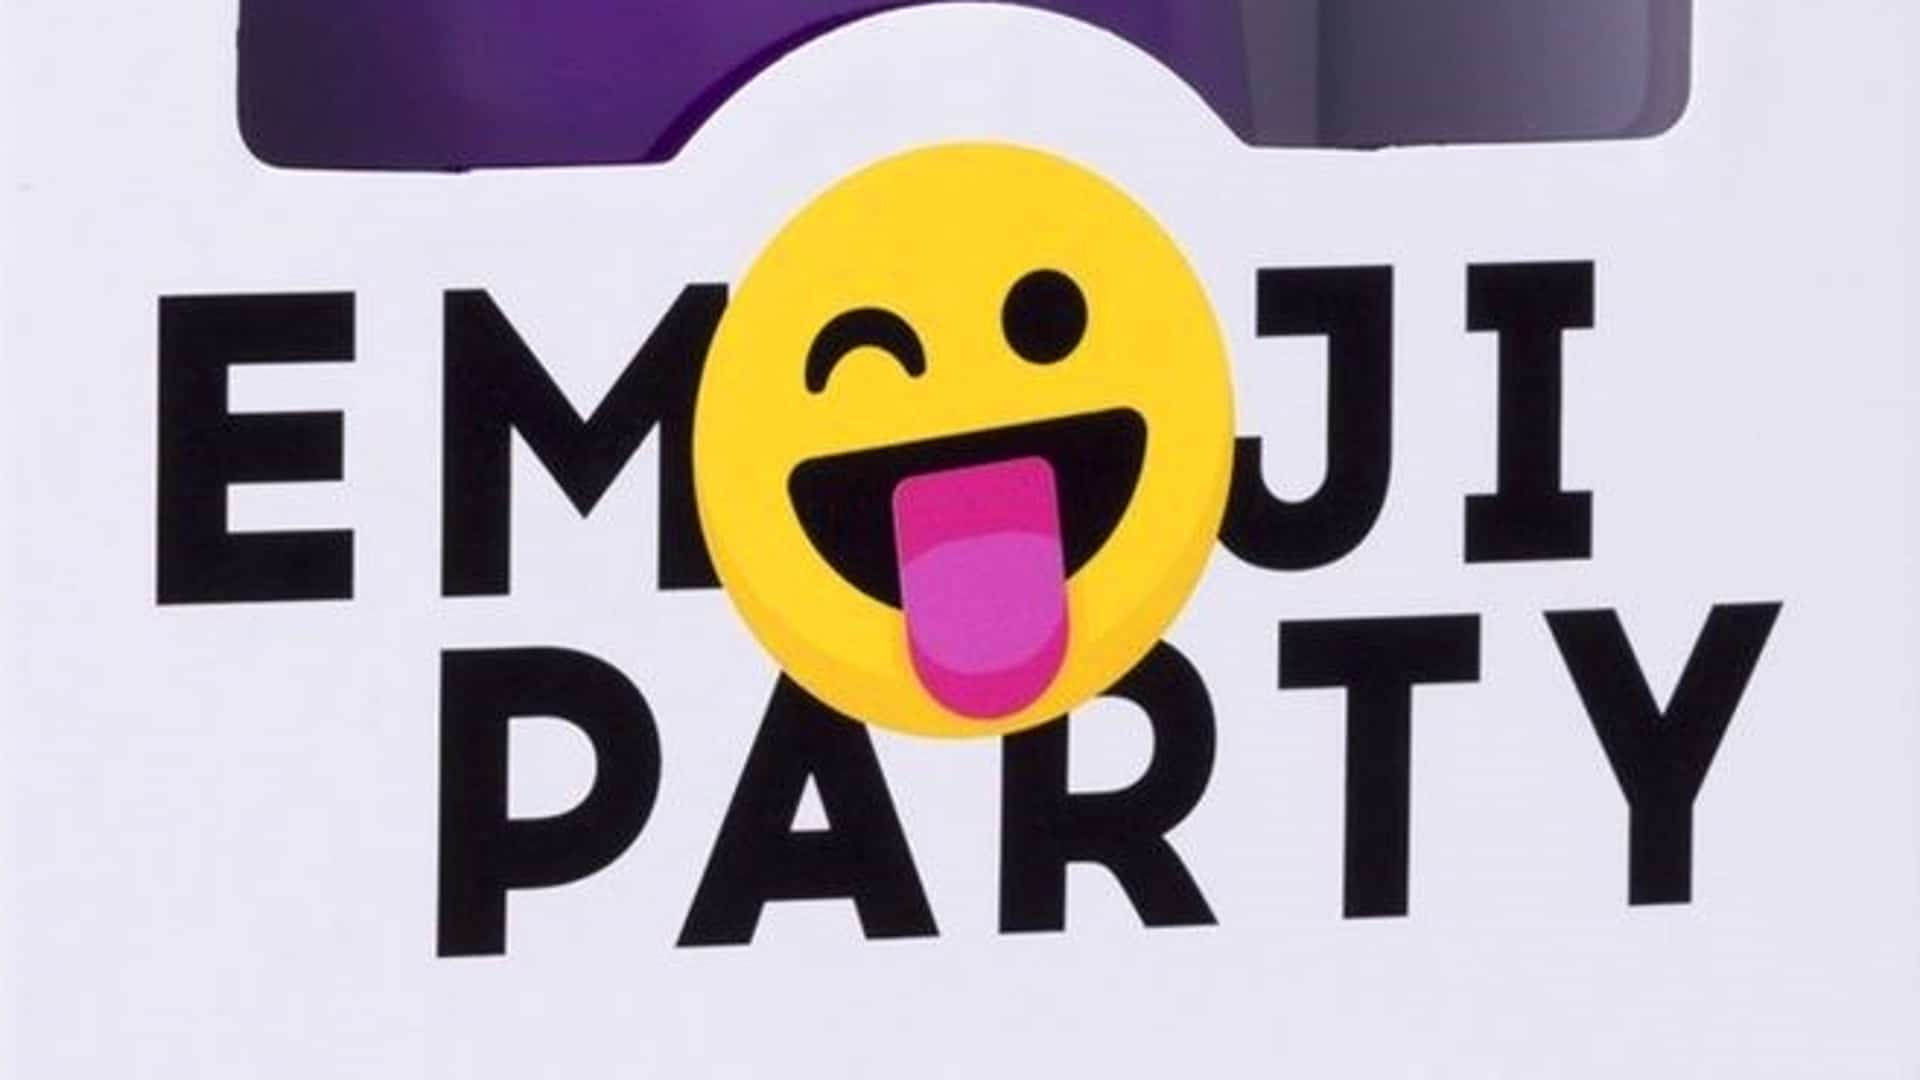 How to play Emoji Party?